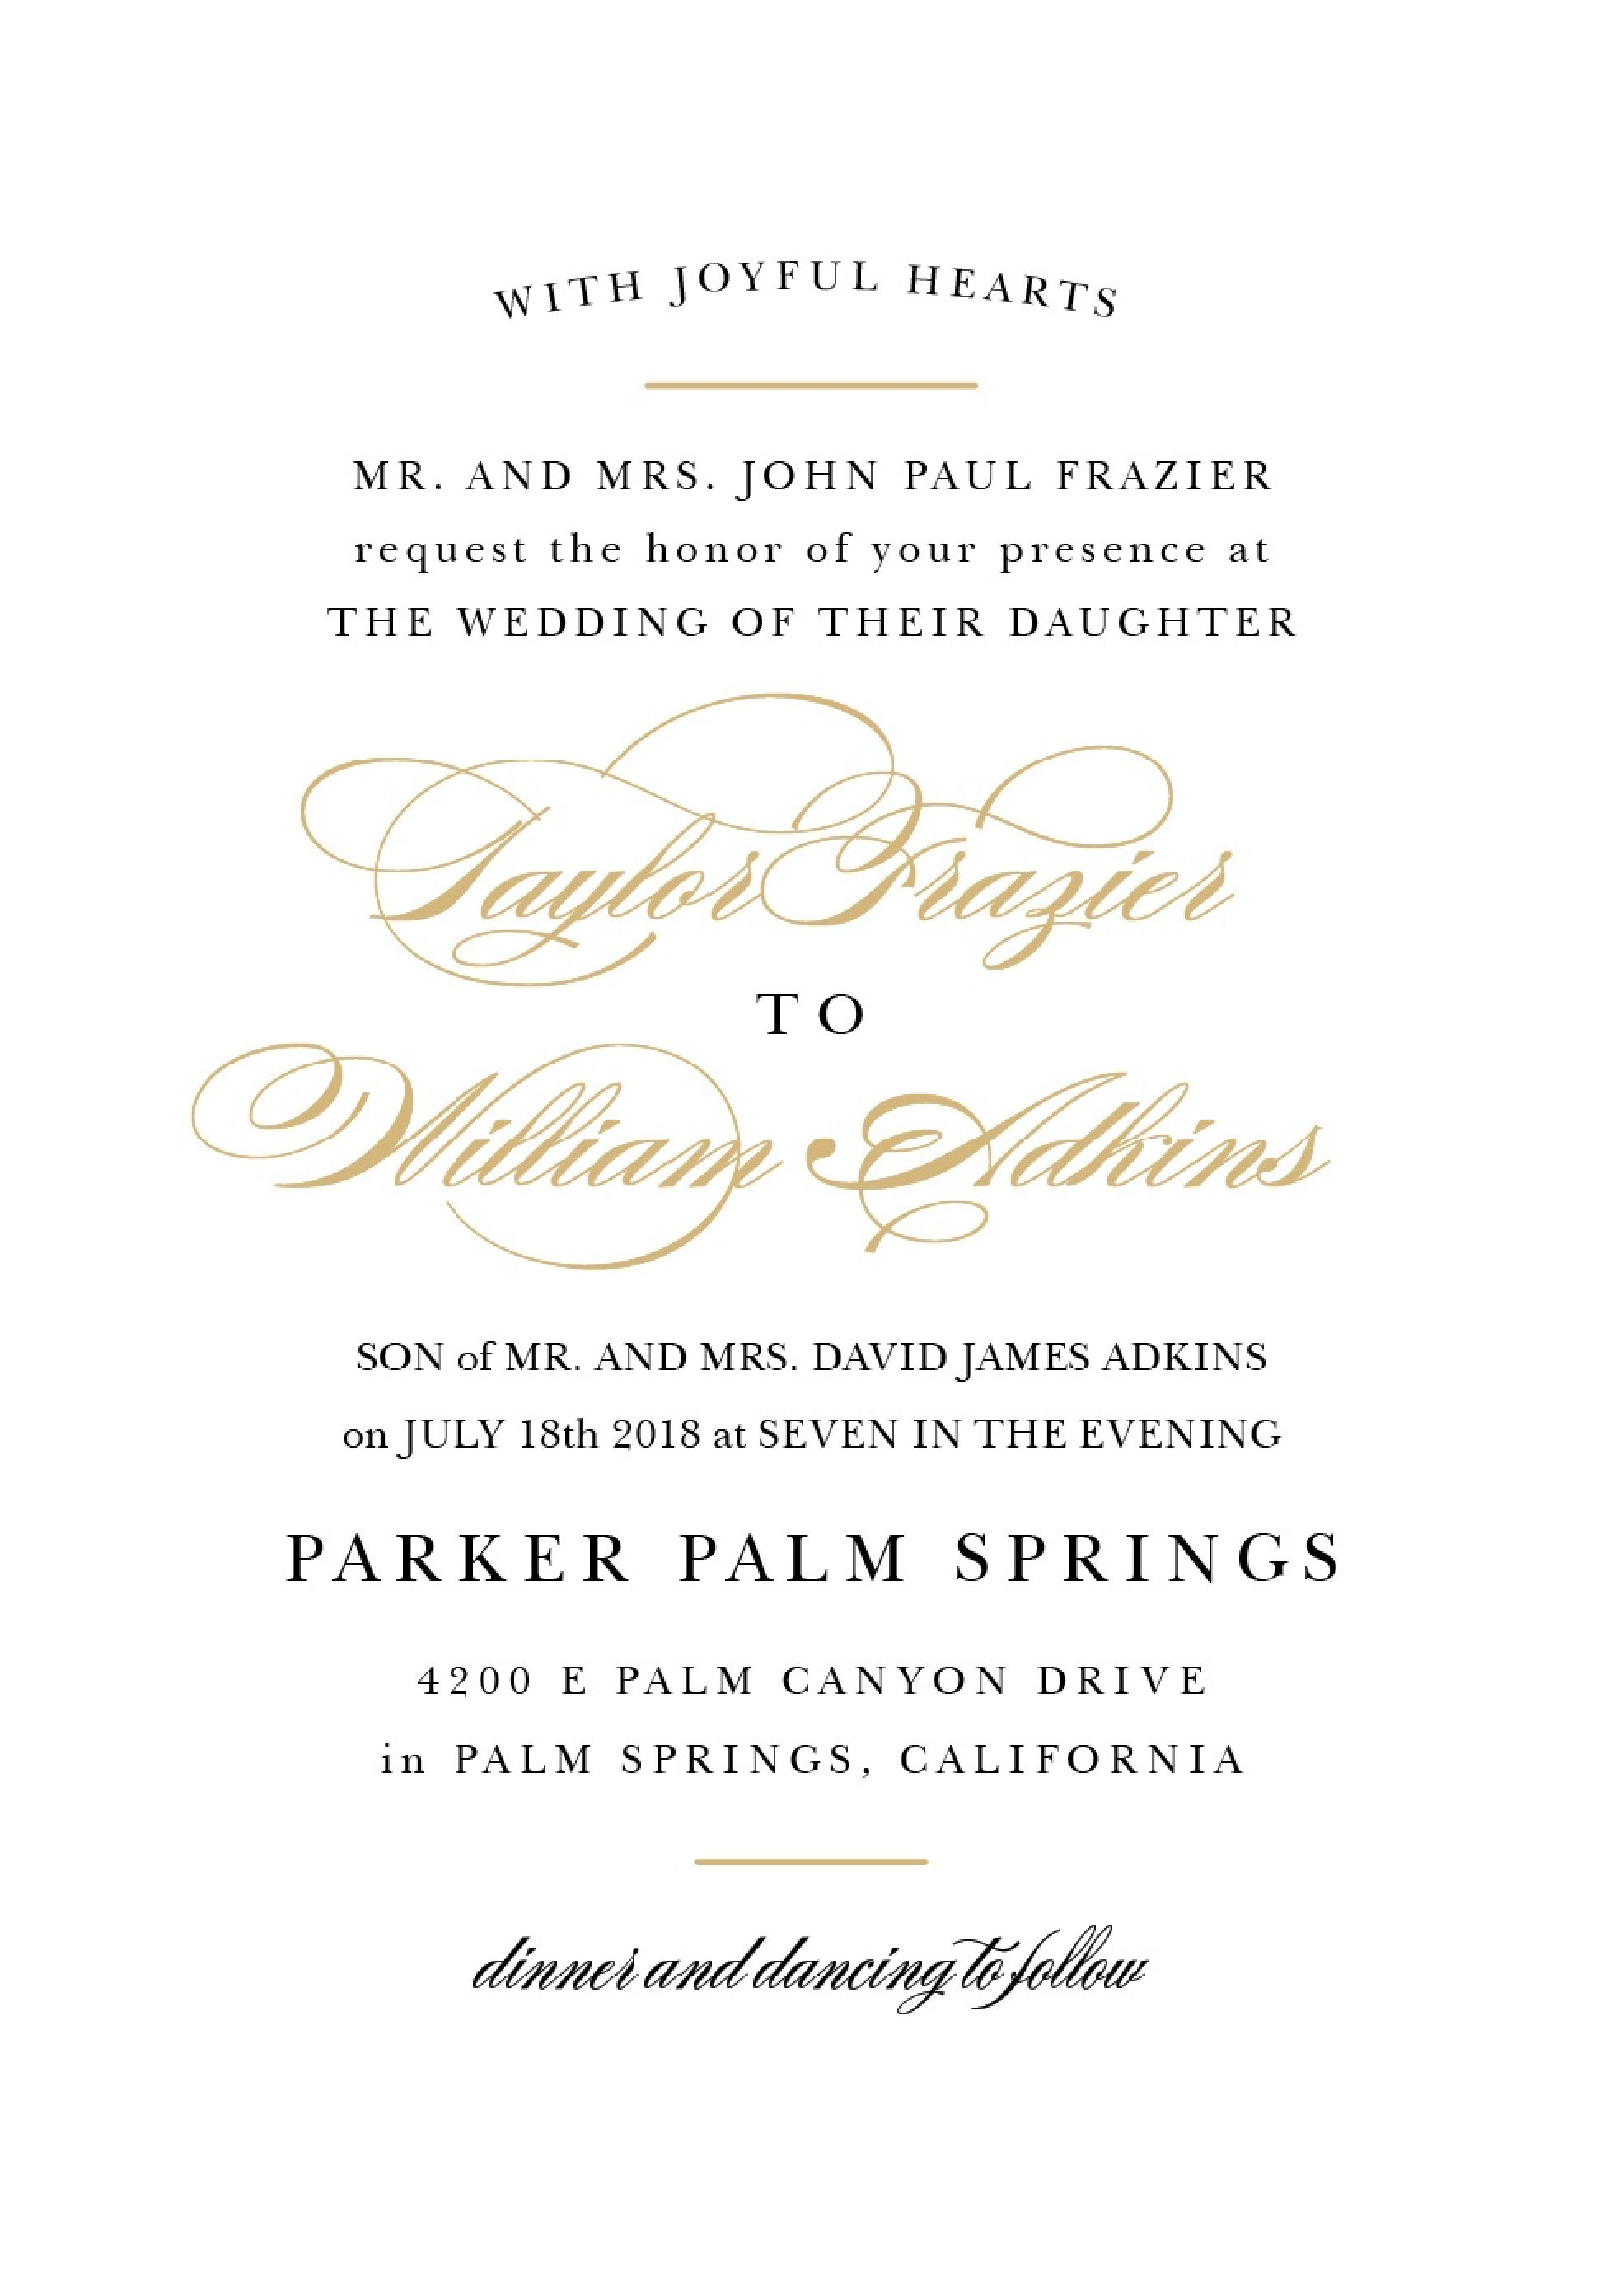 Wedding Invitation Wording Samples Regarding Sample Wedding In 2020 Wedding Invitations Examples Wedding Invitation Wording Templates Sample Wedding Invitation Wording